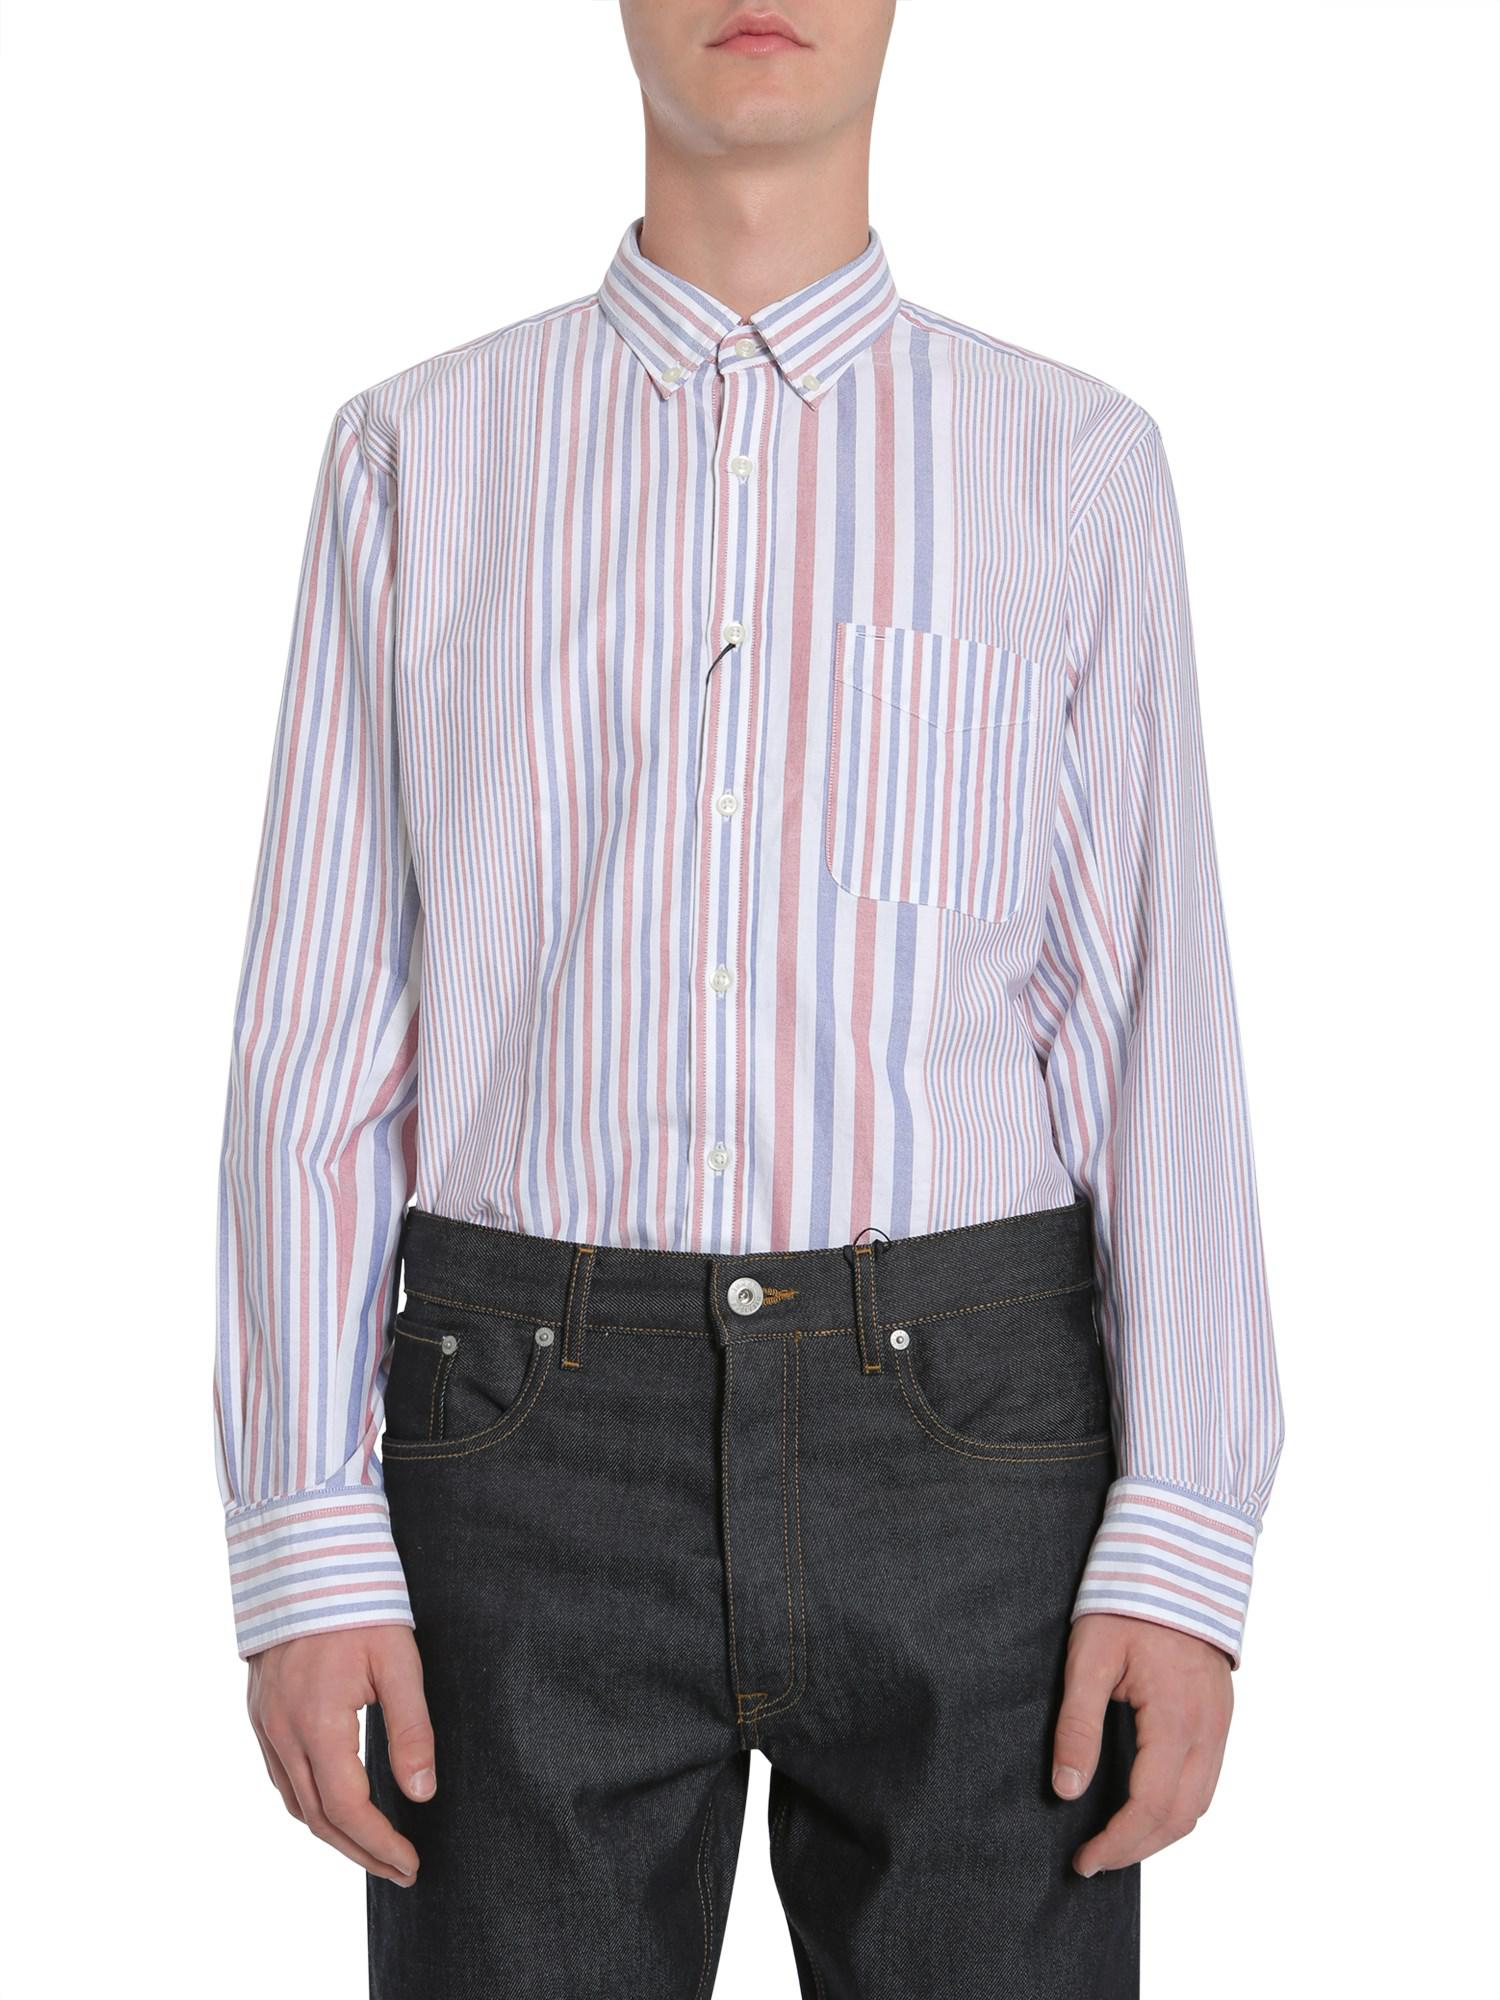 75f50102691c Lyst - Tommy Hilfiger Striped Oxford Cotton Shirt for Men